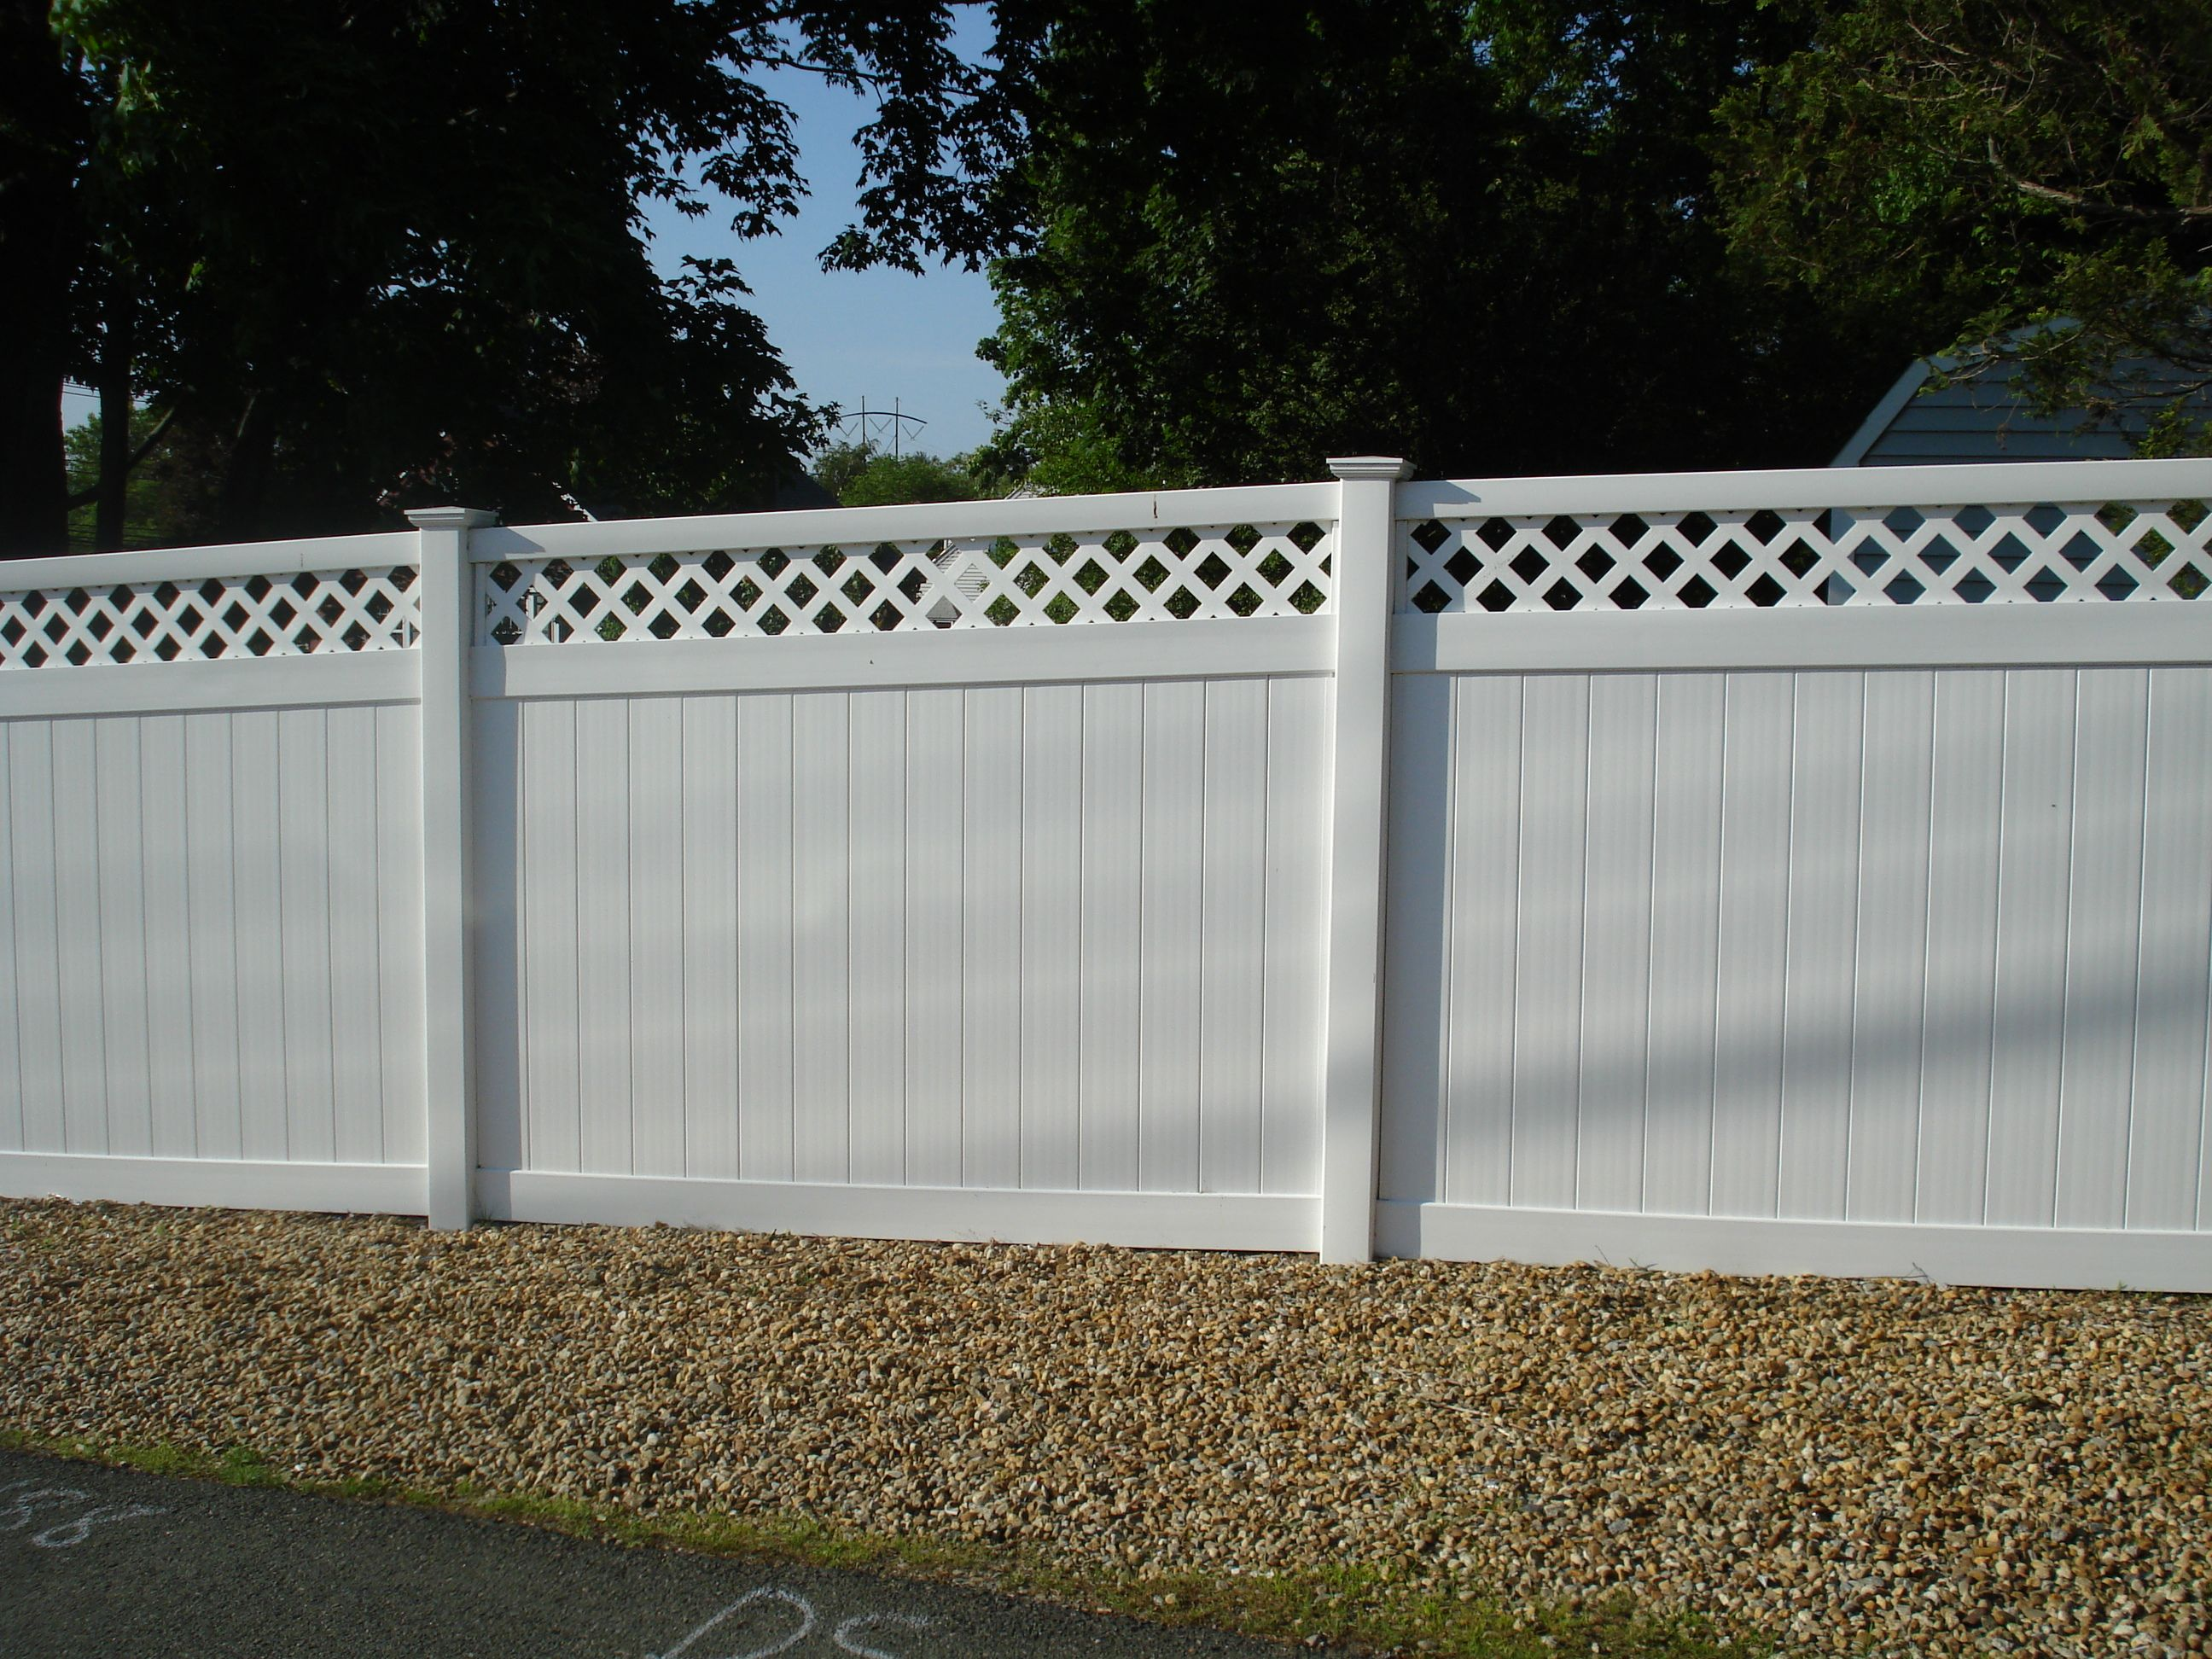 Non flammable vinyl fence ,stockist of boards in